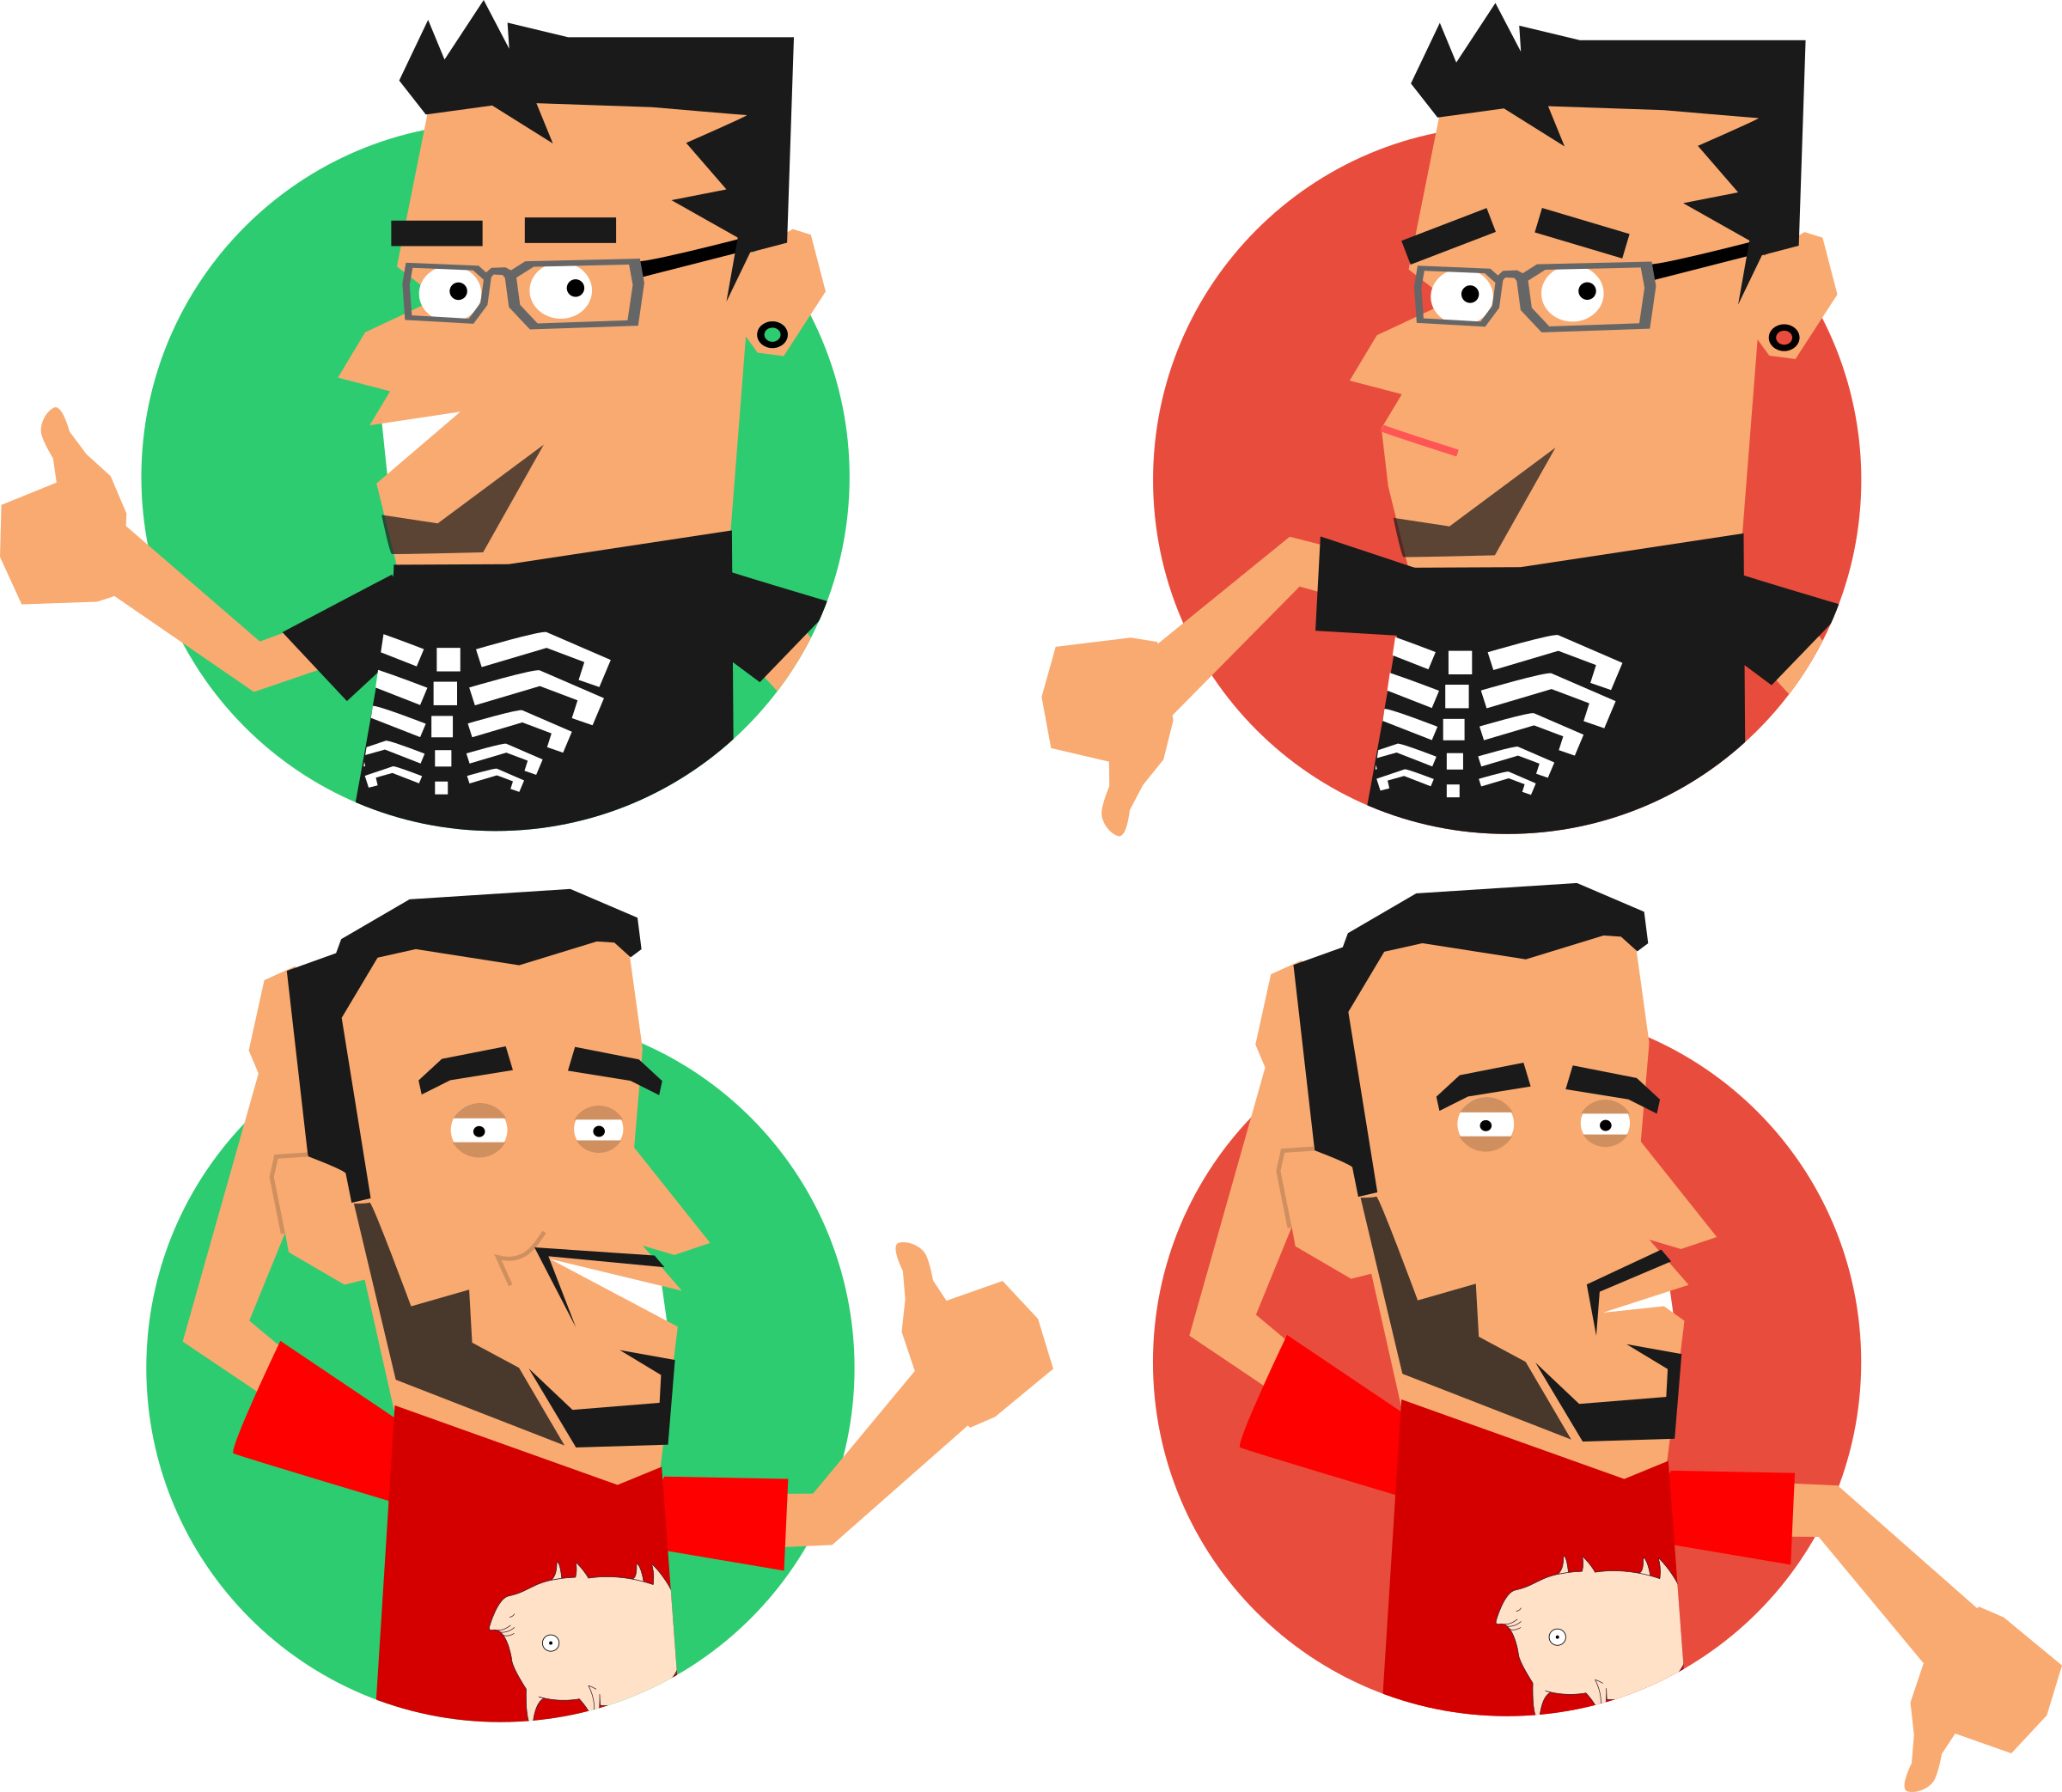 Like dislike clipart graphic free download Clipart - Luiz e Rafael - Like/Dislike graphic free download